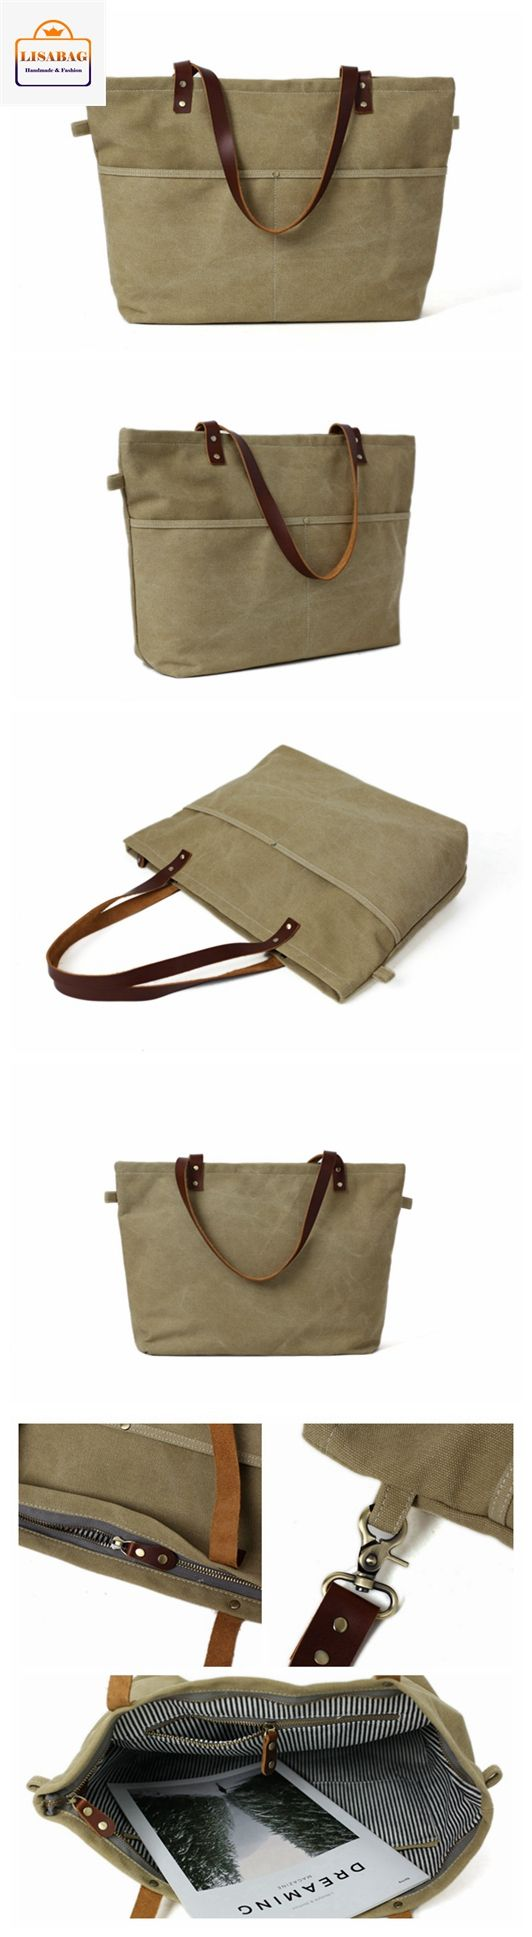 Handmade Khaki Canvas Tote Bag Messenger Bag Shoulder Bag School Bag Handbag 14022